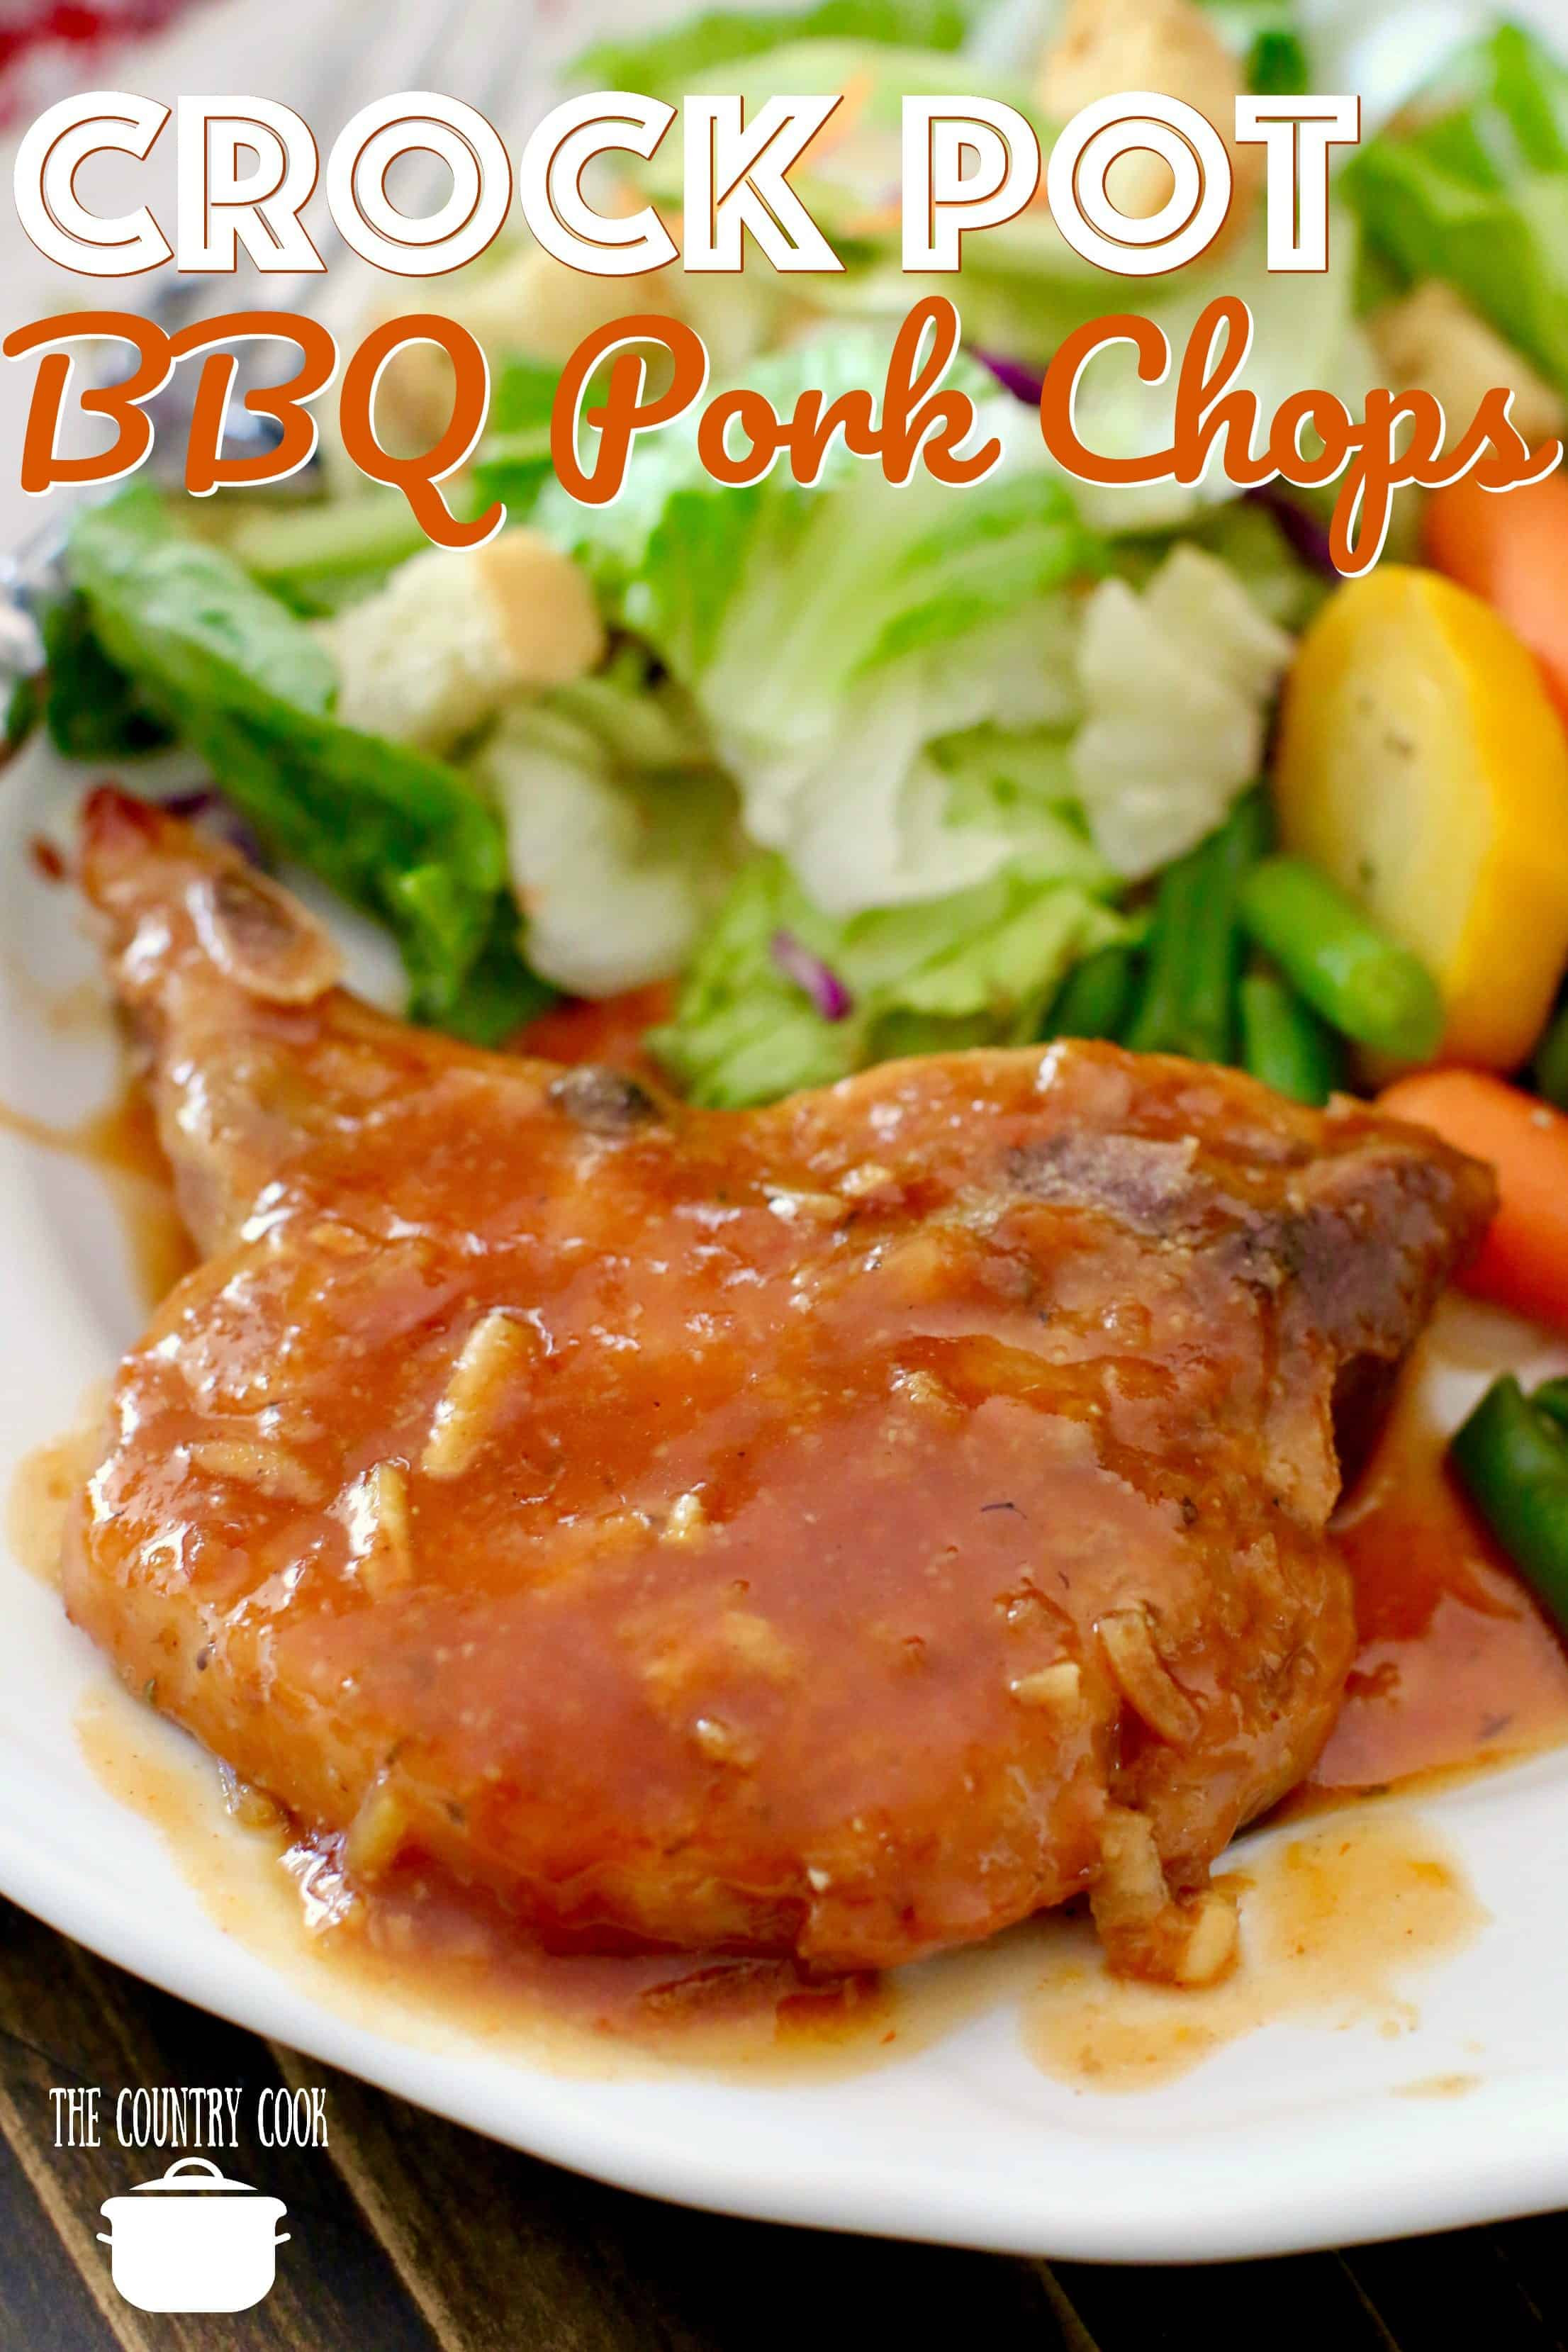 Crock Pot Bbq Pork Chops  Crock Pot BBQ Pork Chops The Country Cook